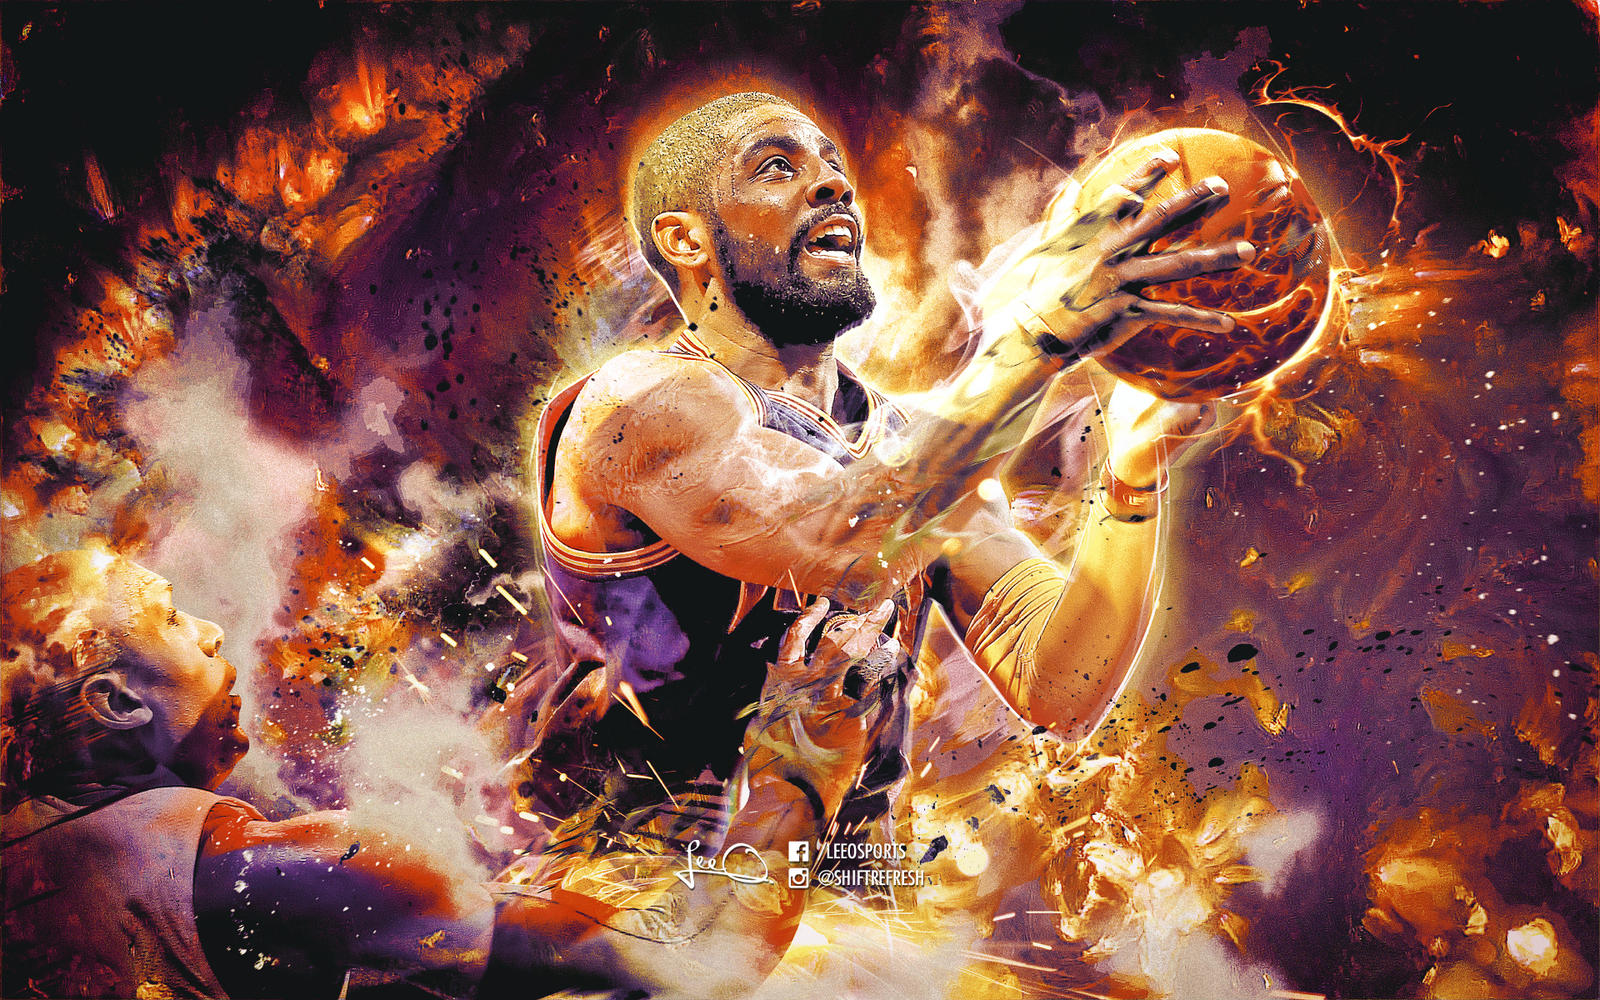 Kyrie irving nba wallpaper 2 0 by skythlee on deviantart - 2 0 wallpaper ...